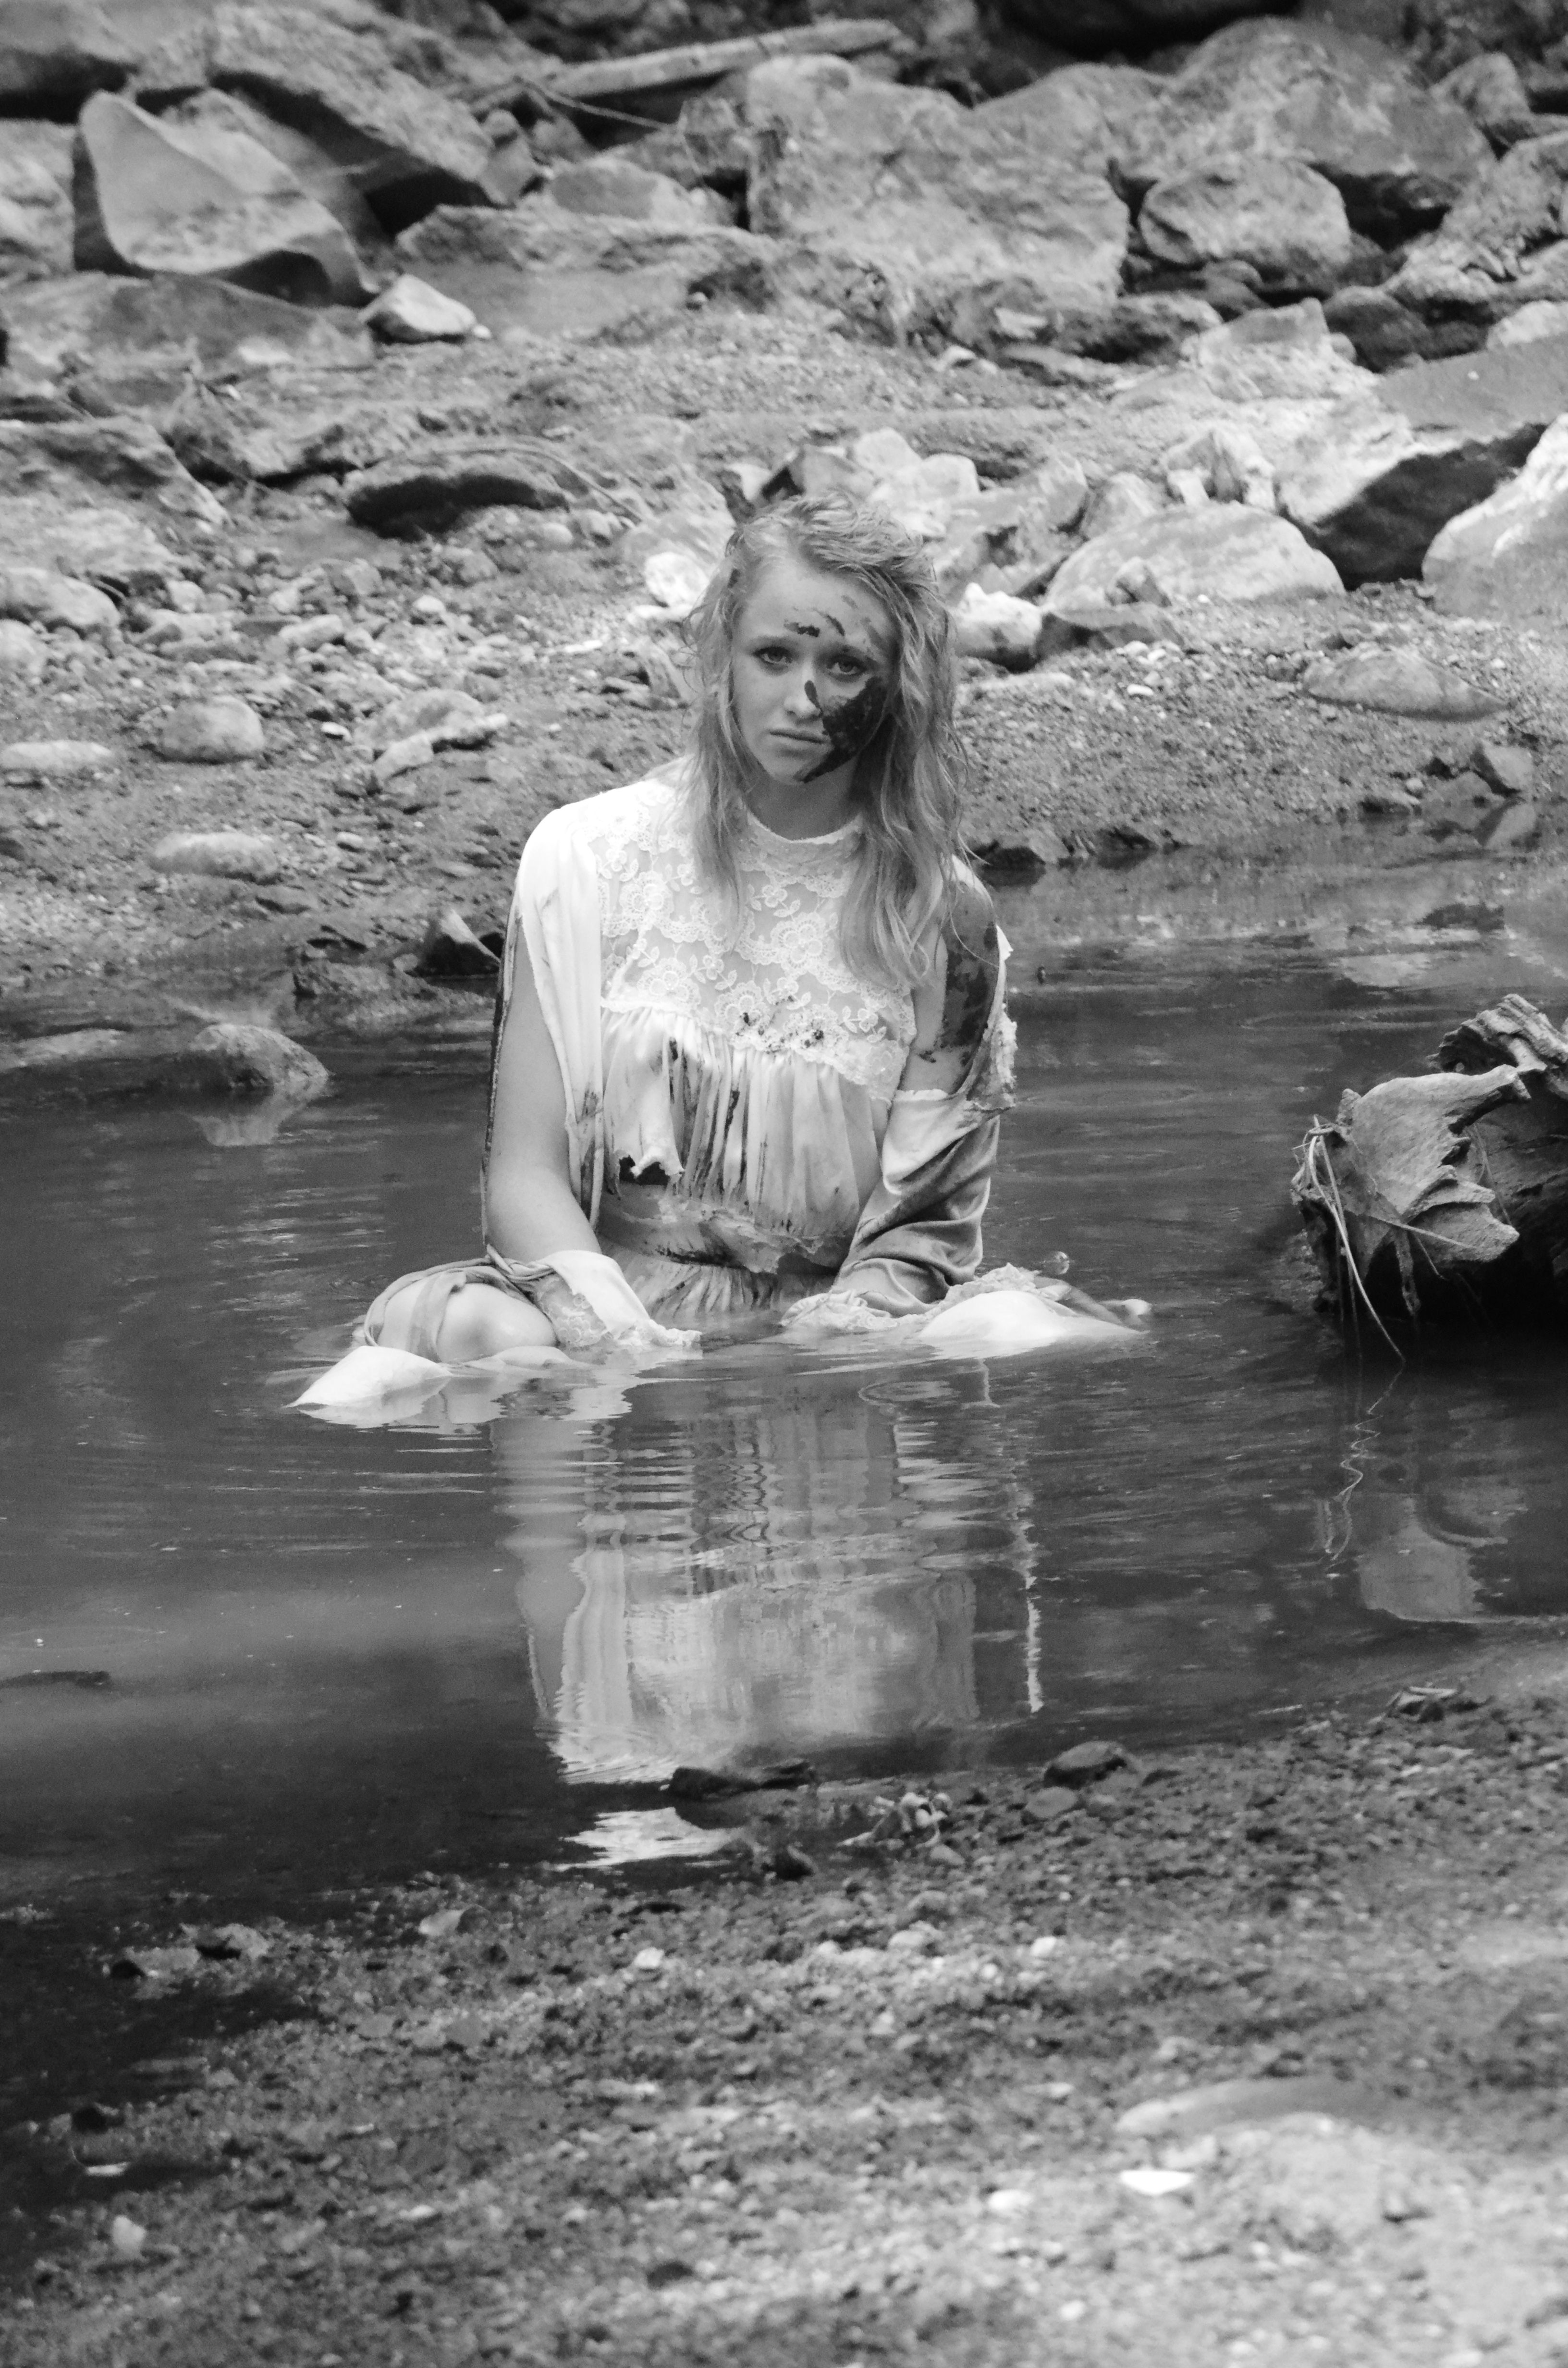 Athena massey red alert pictures to pin on pinterest - My Beautiful Doll Swamp Woman Shoot